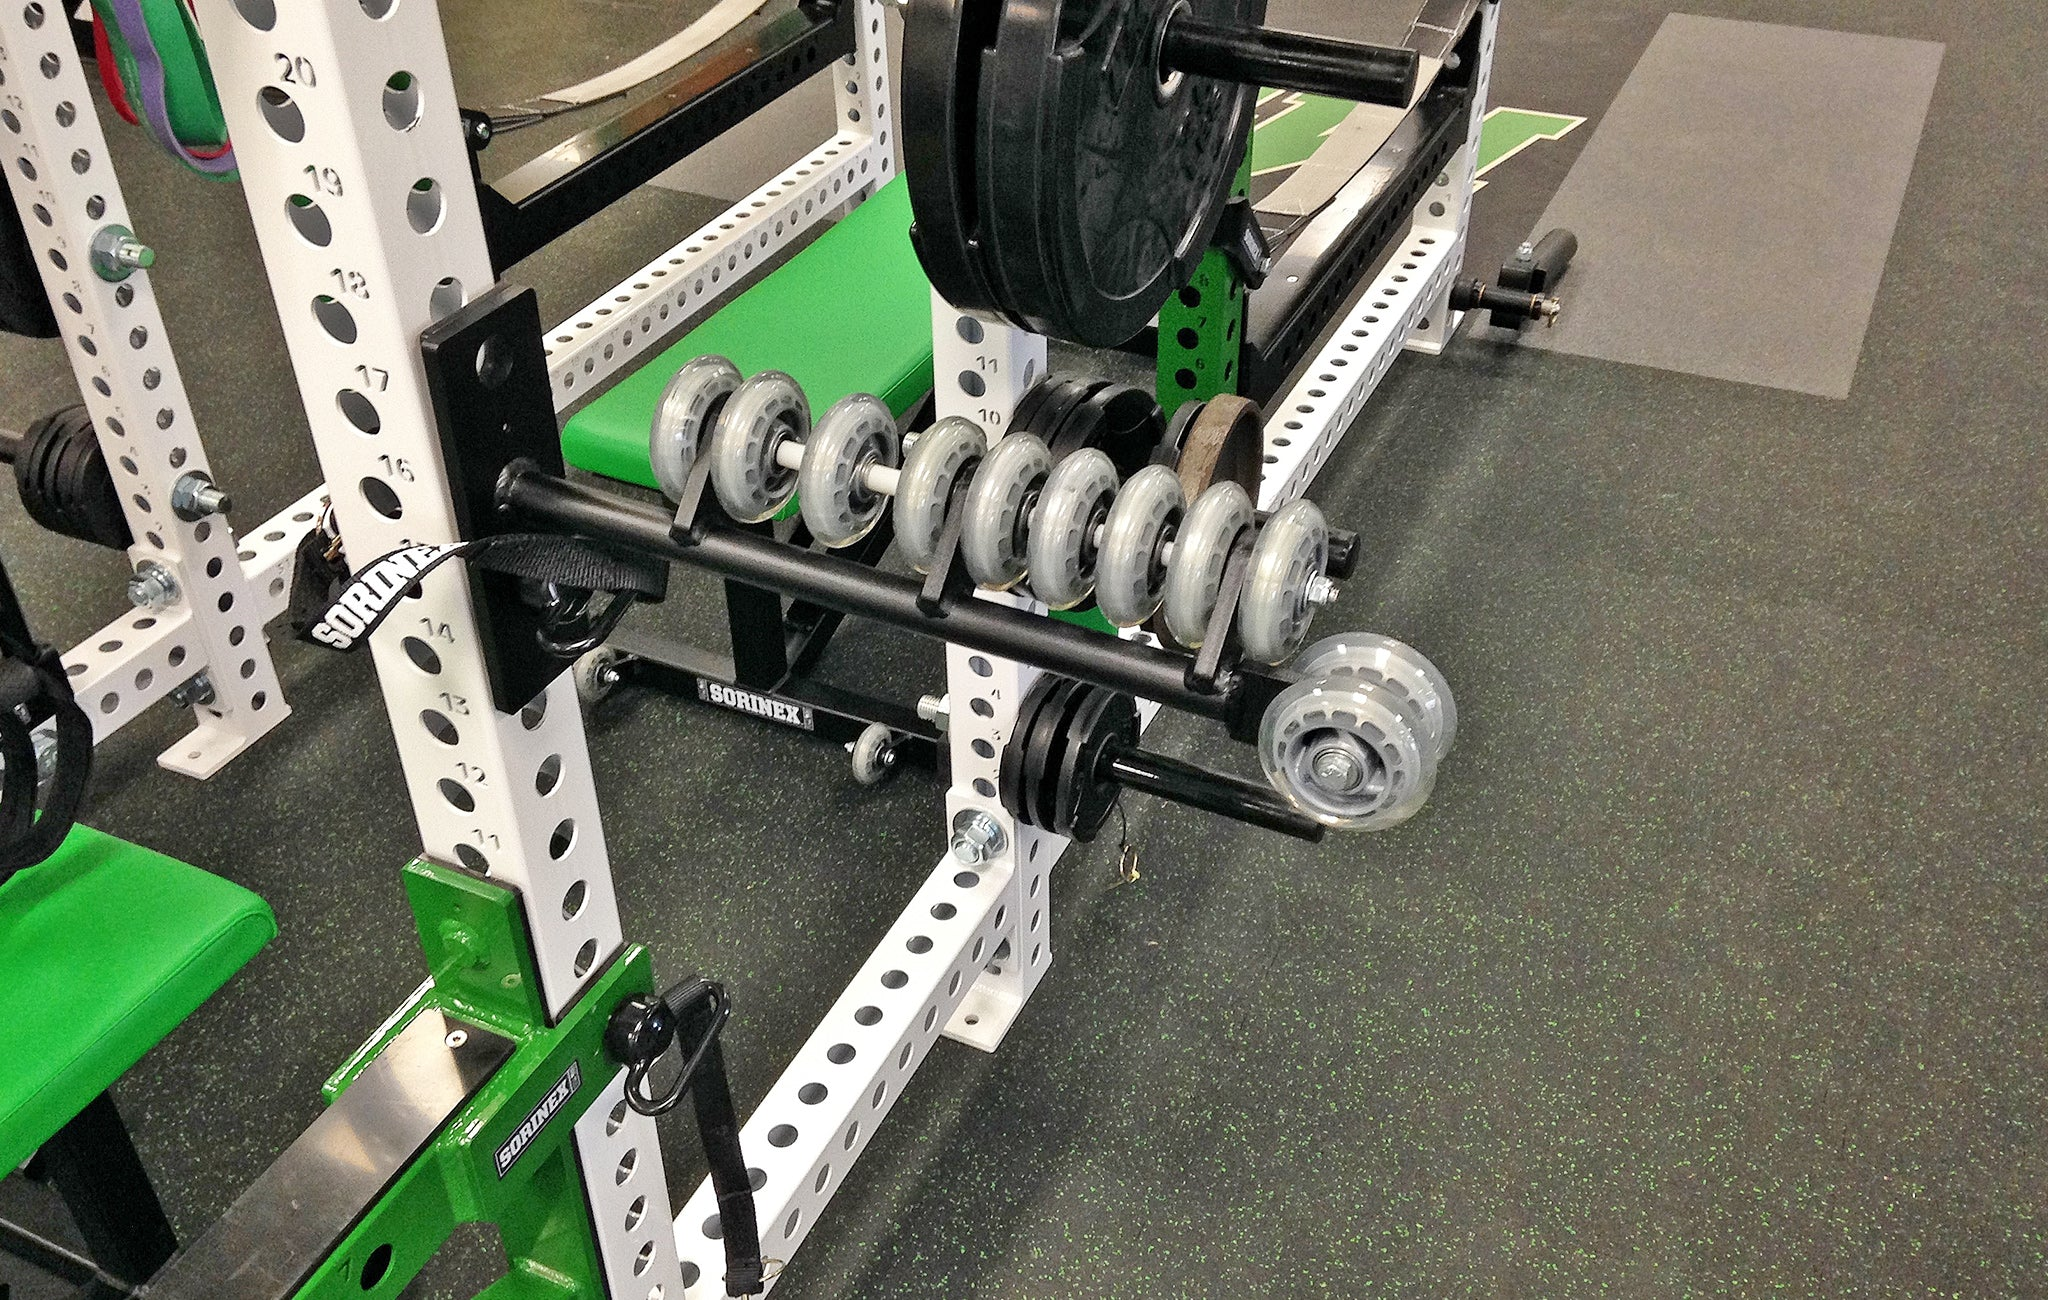 Myers Park High School strength training